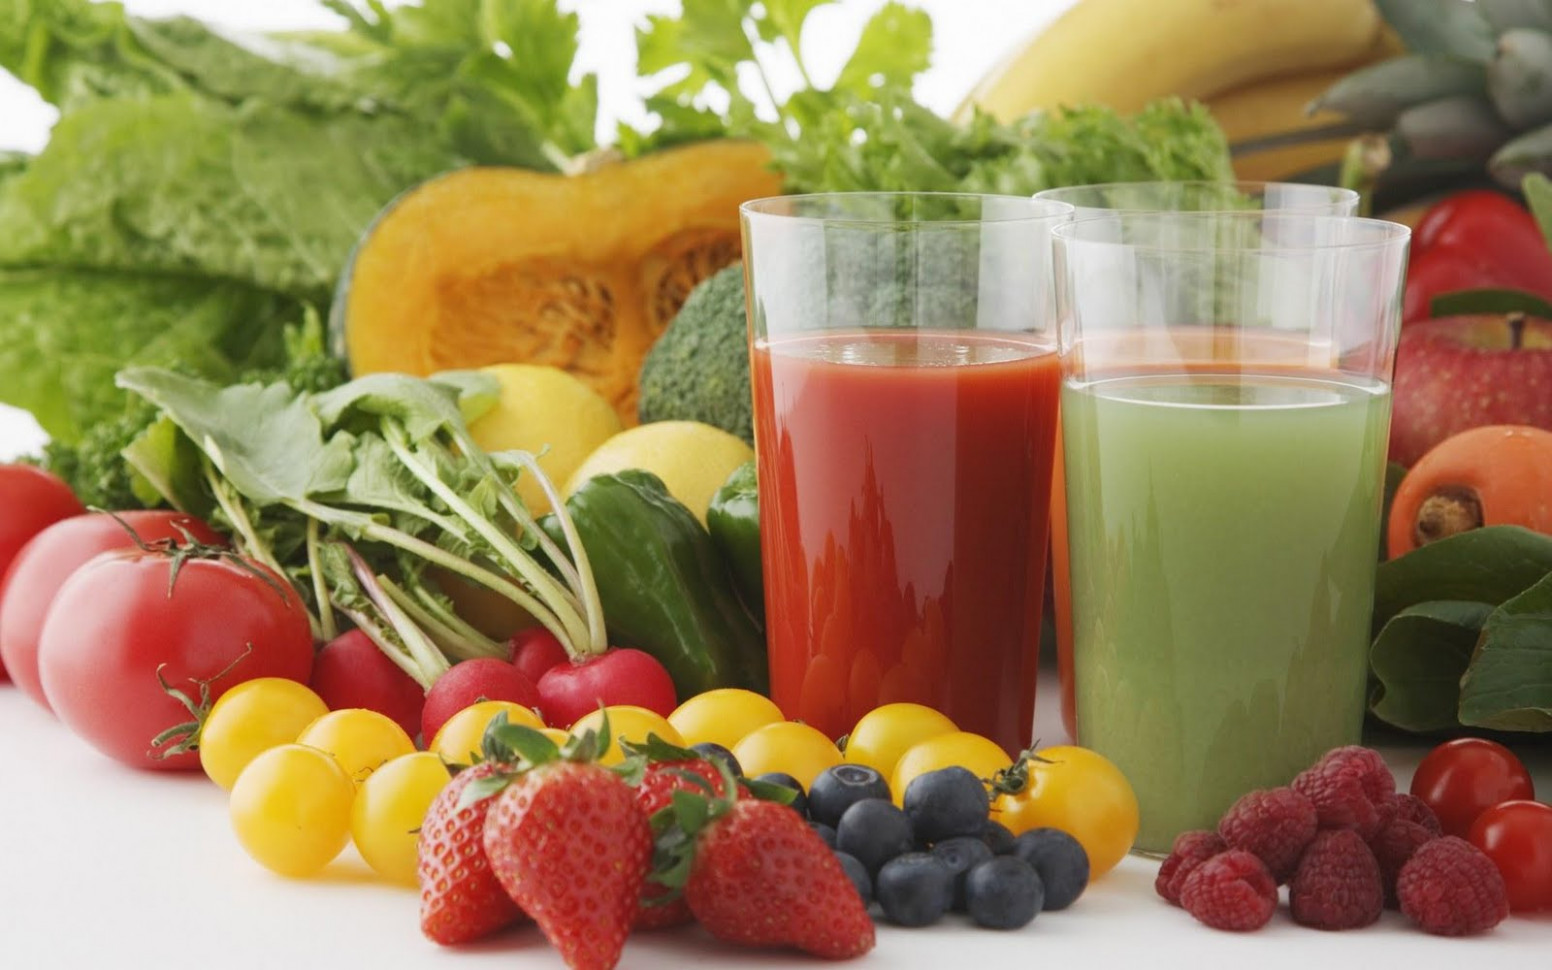 How to Make Healthy Juice - Spinach, Cantaloupe & Other Juice - healthy juicer recipes